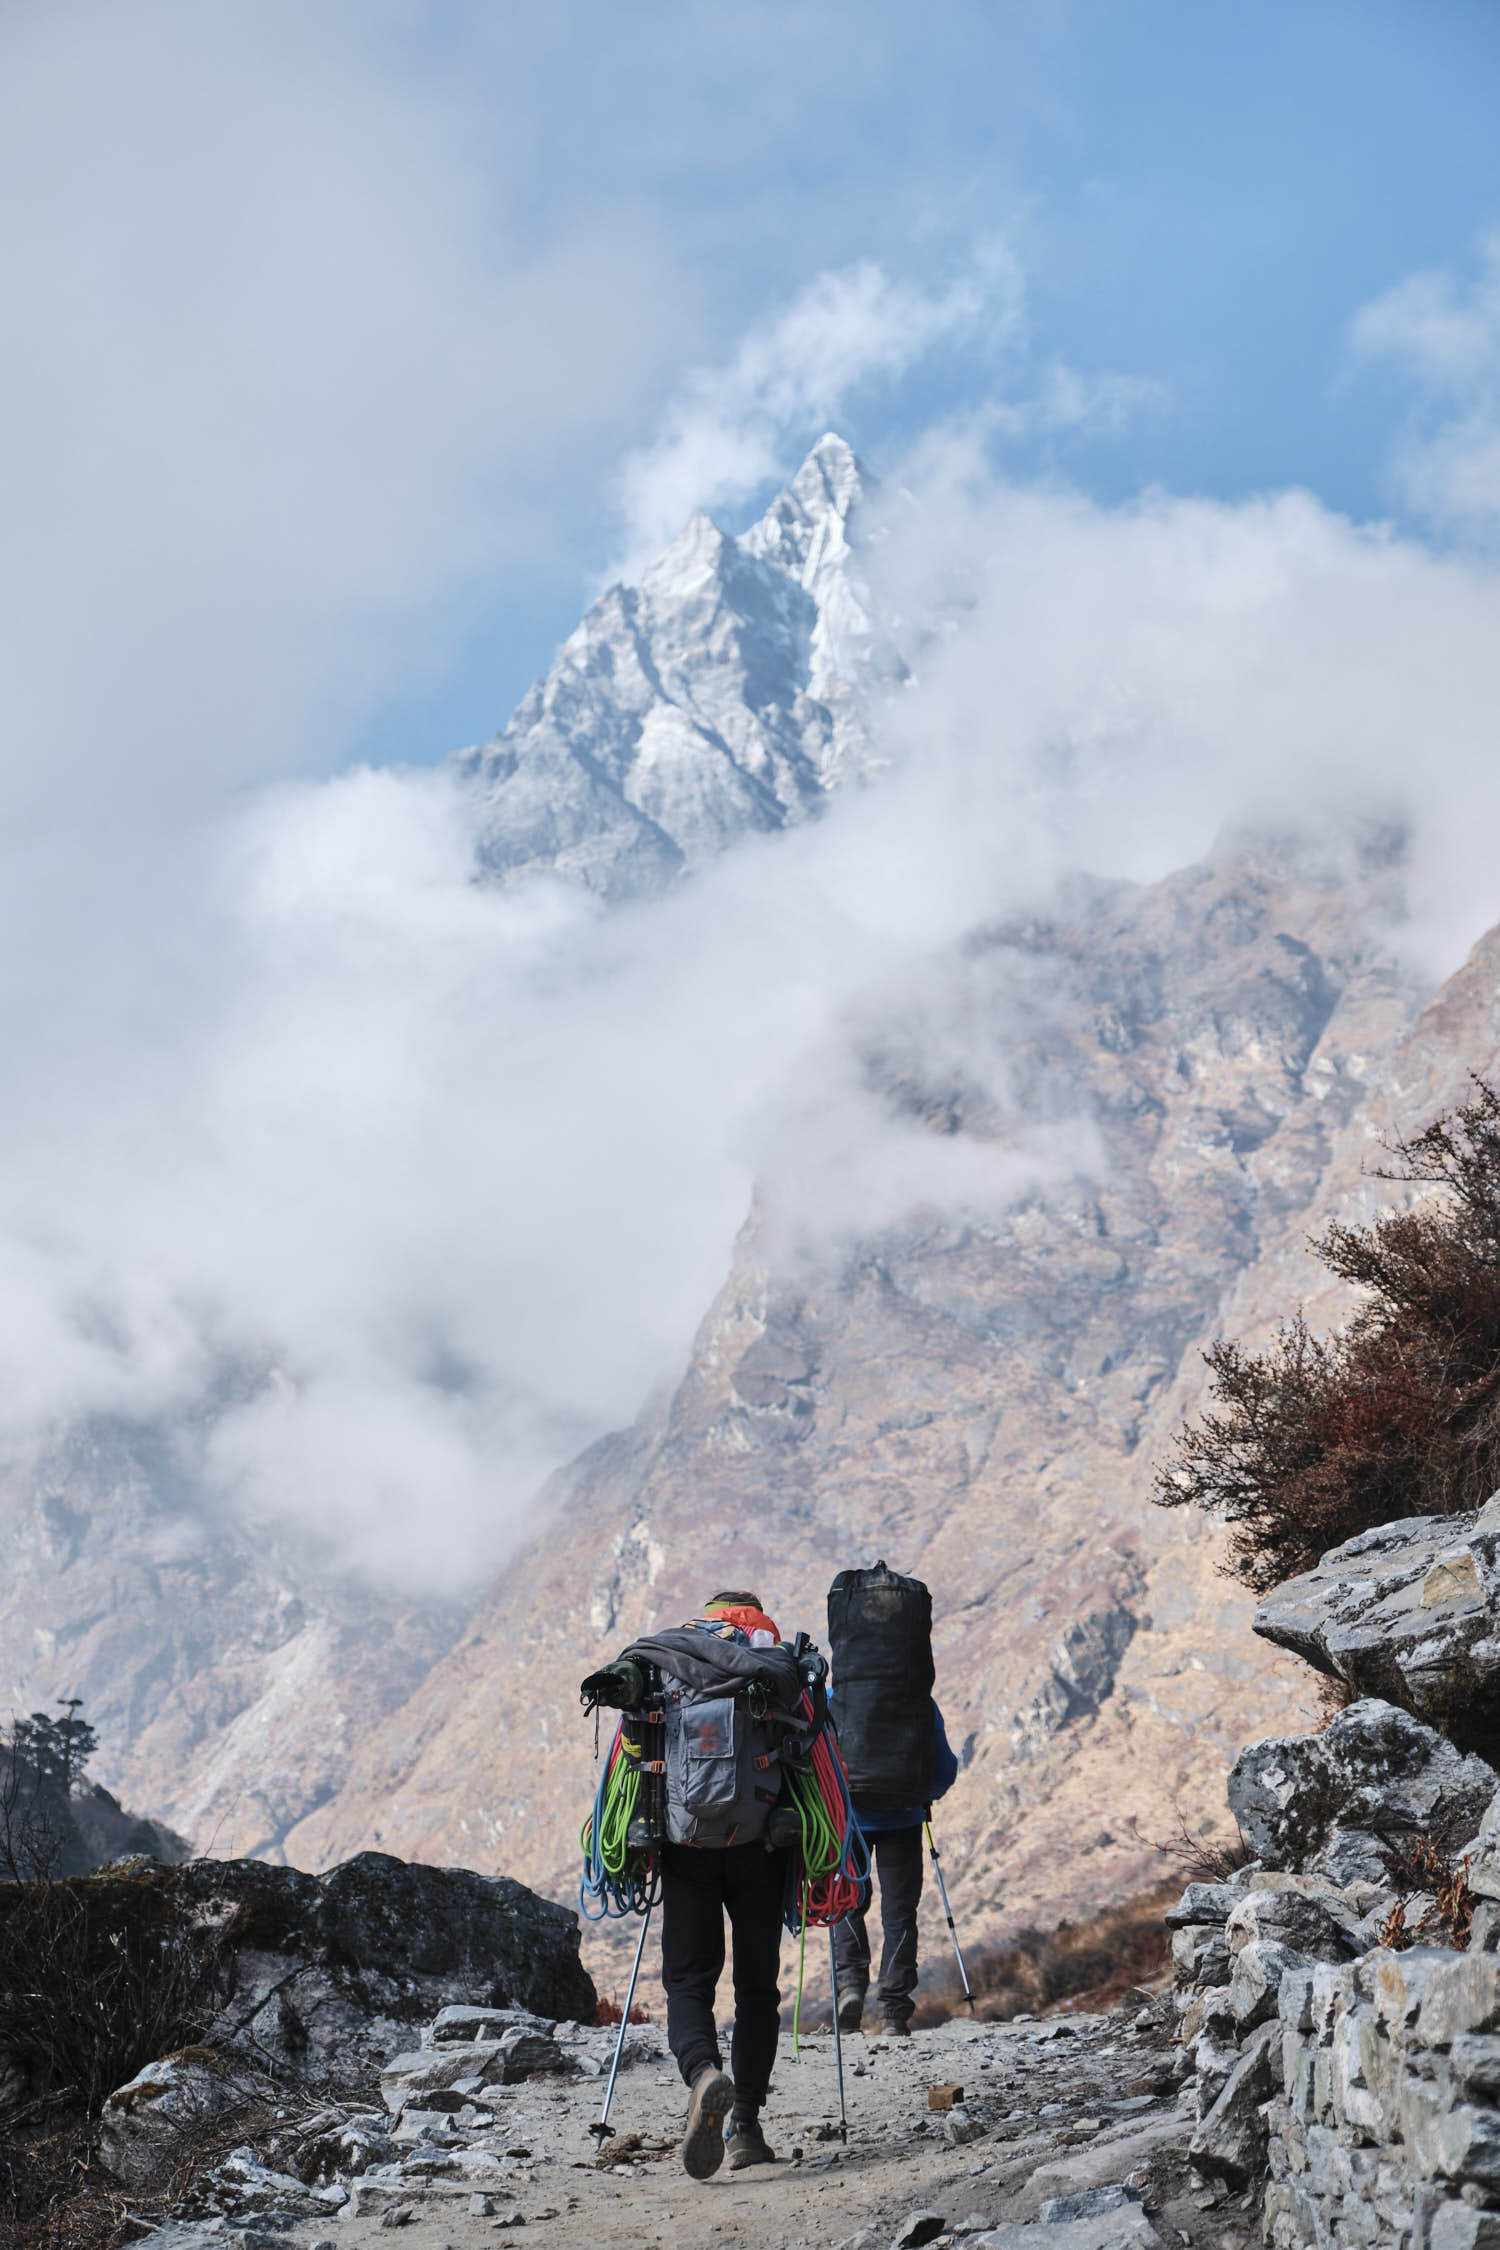 Two people carrying big backpacks in a mountain area.